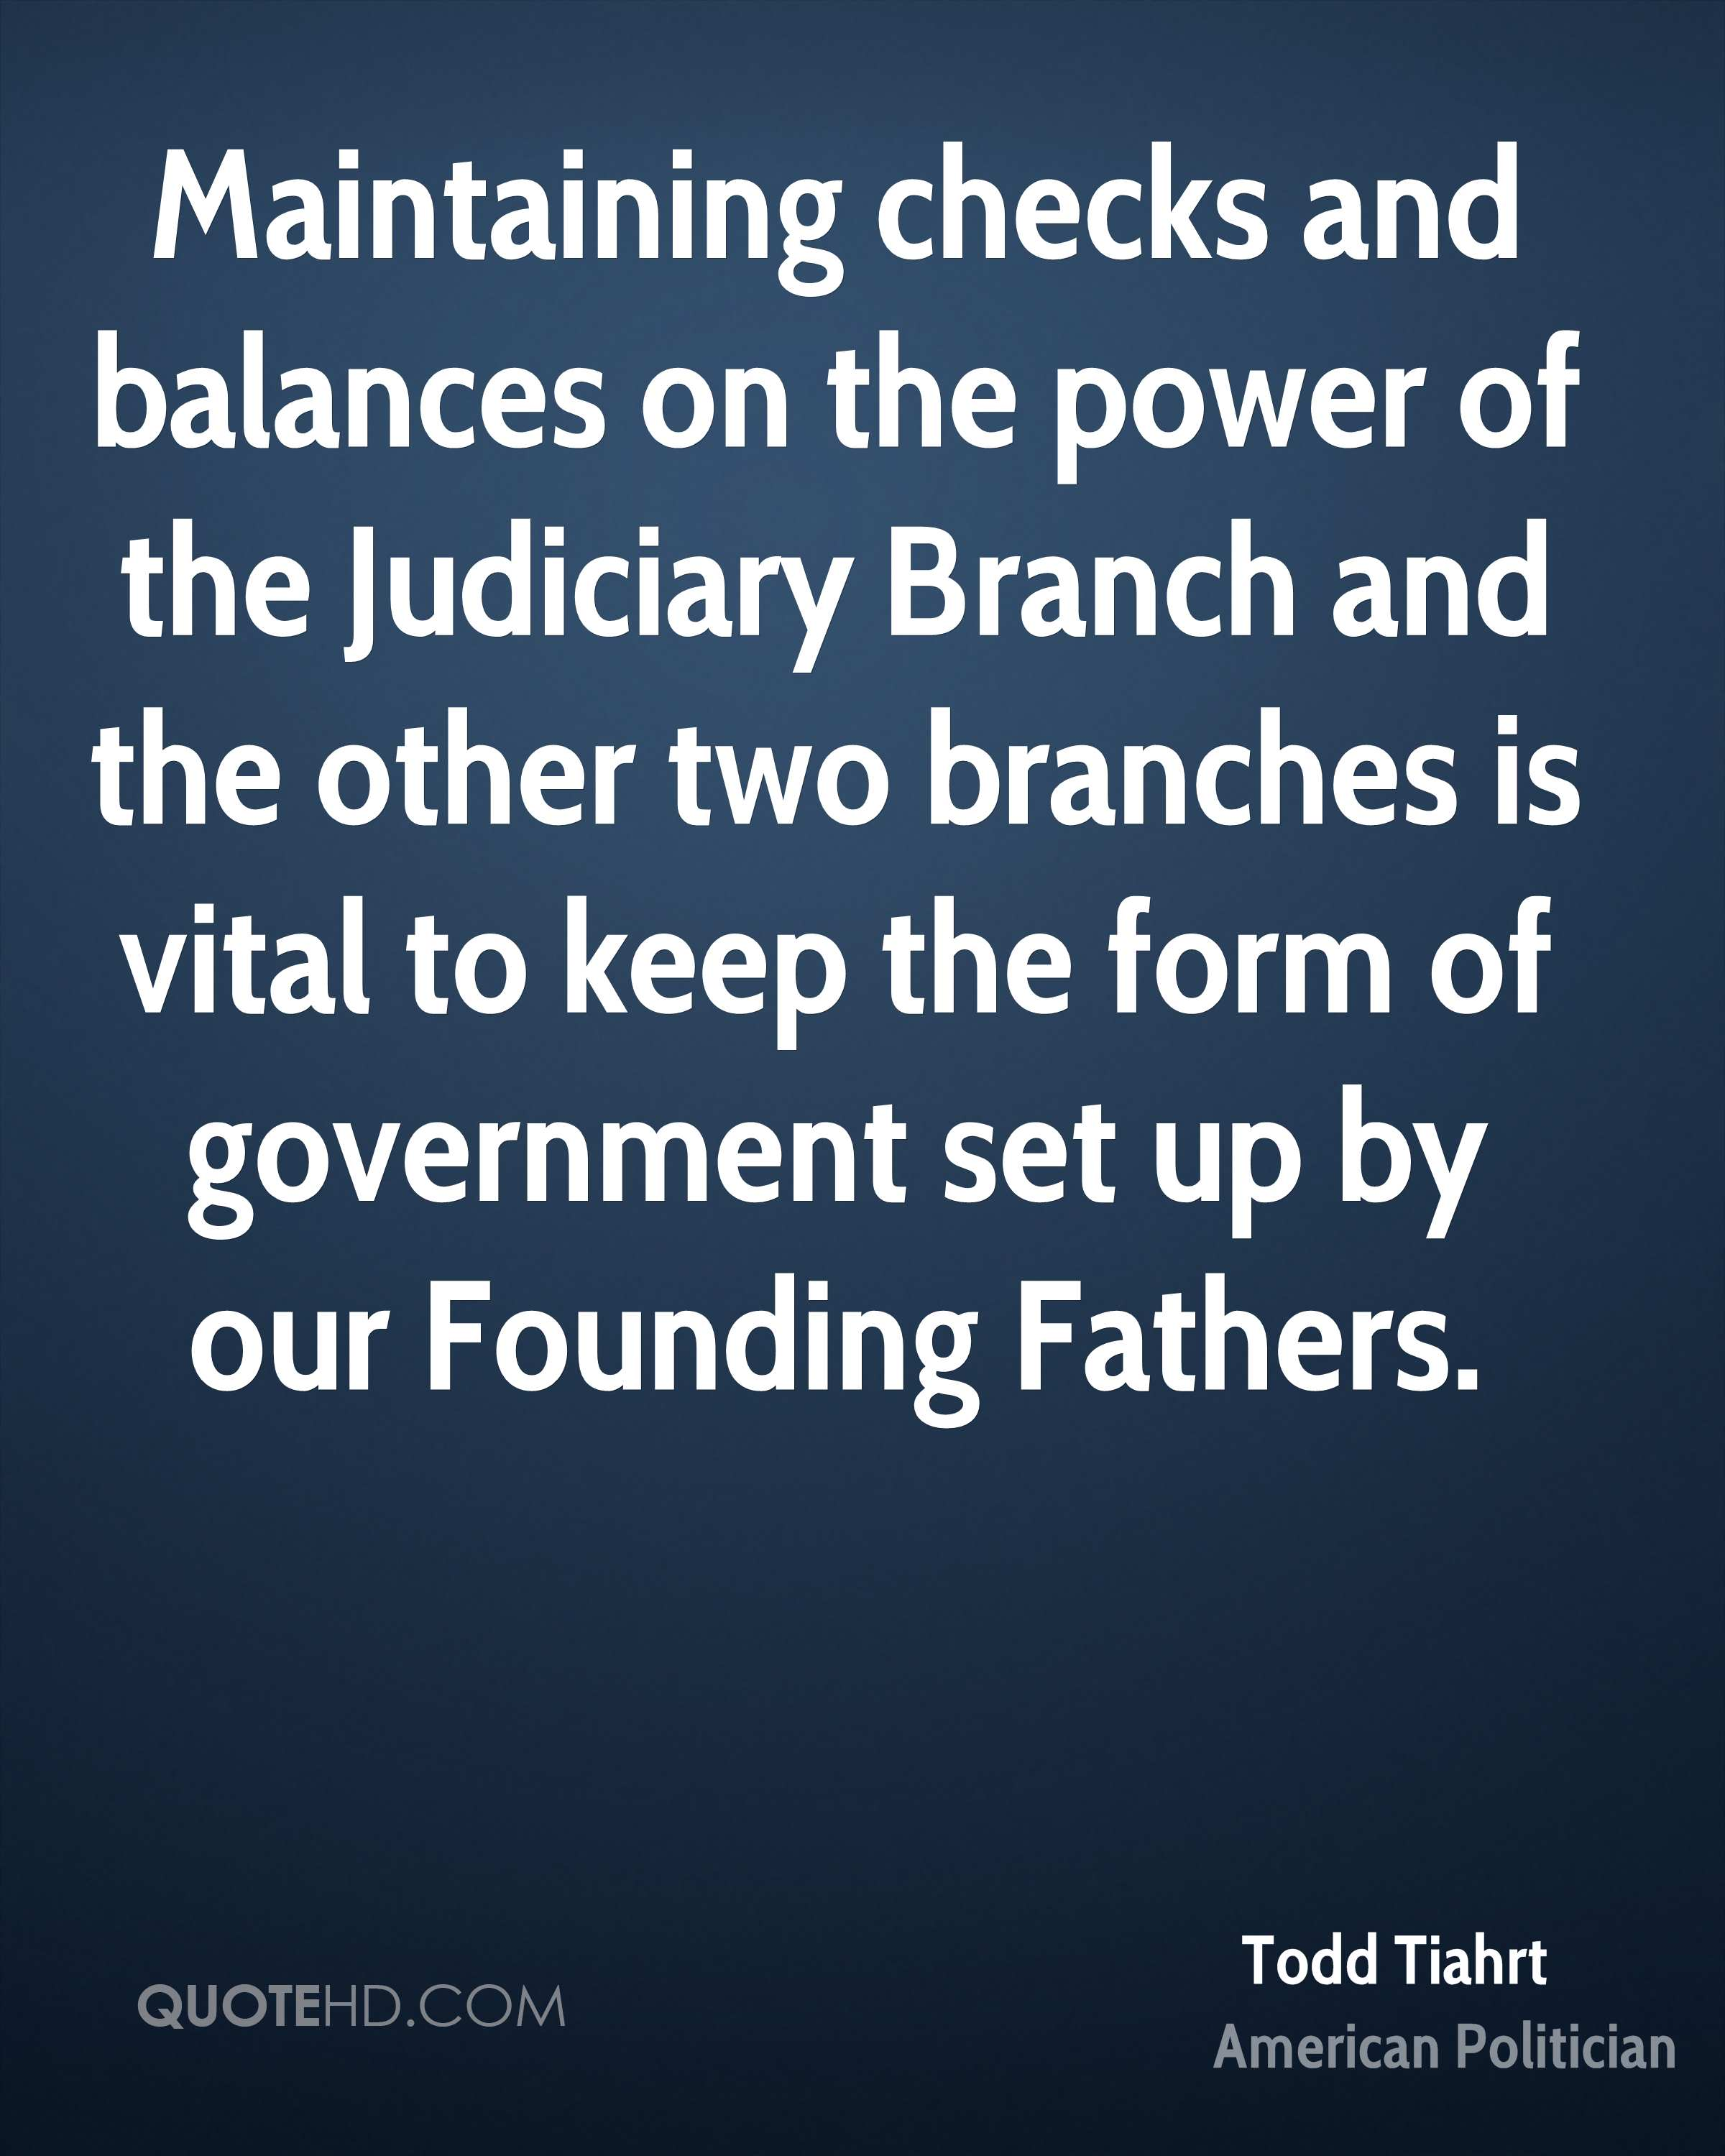 Maintaining checks and balances on the power of the Judiciary Branch and the other two branches is vital to keep the form of government set up by our Founding Fathers.